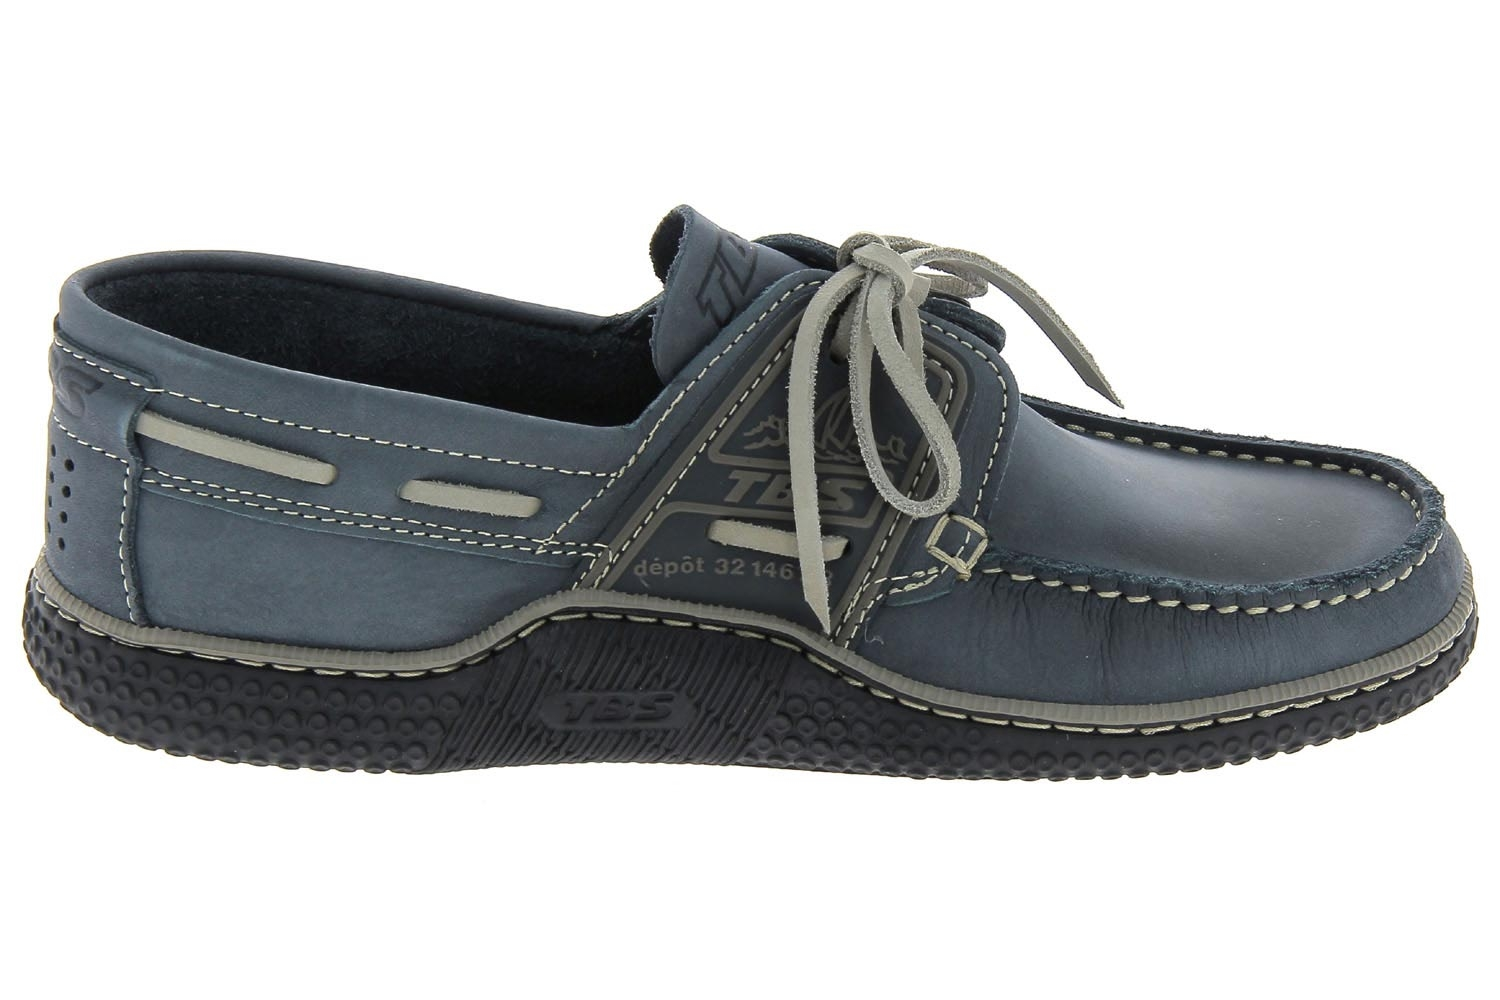 tbs chaussures bateau homme